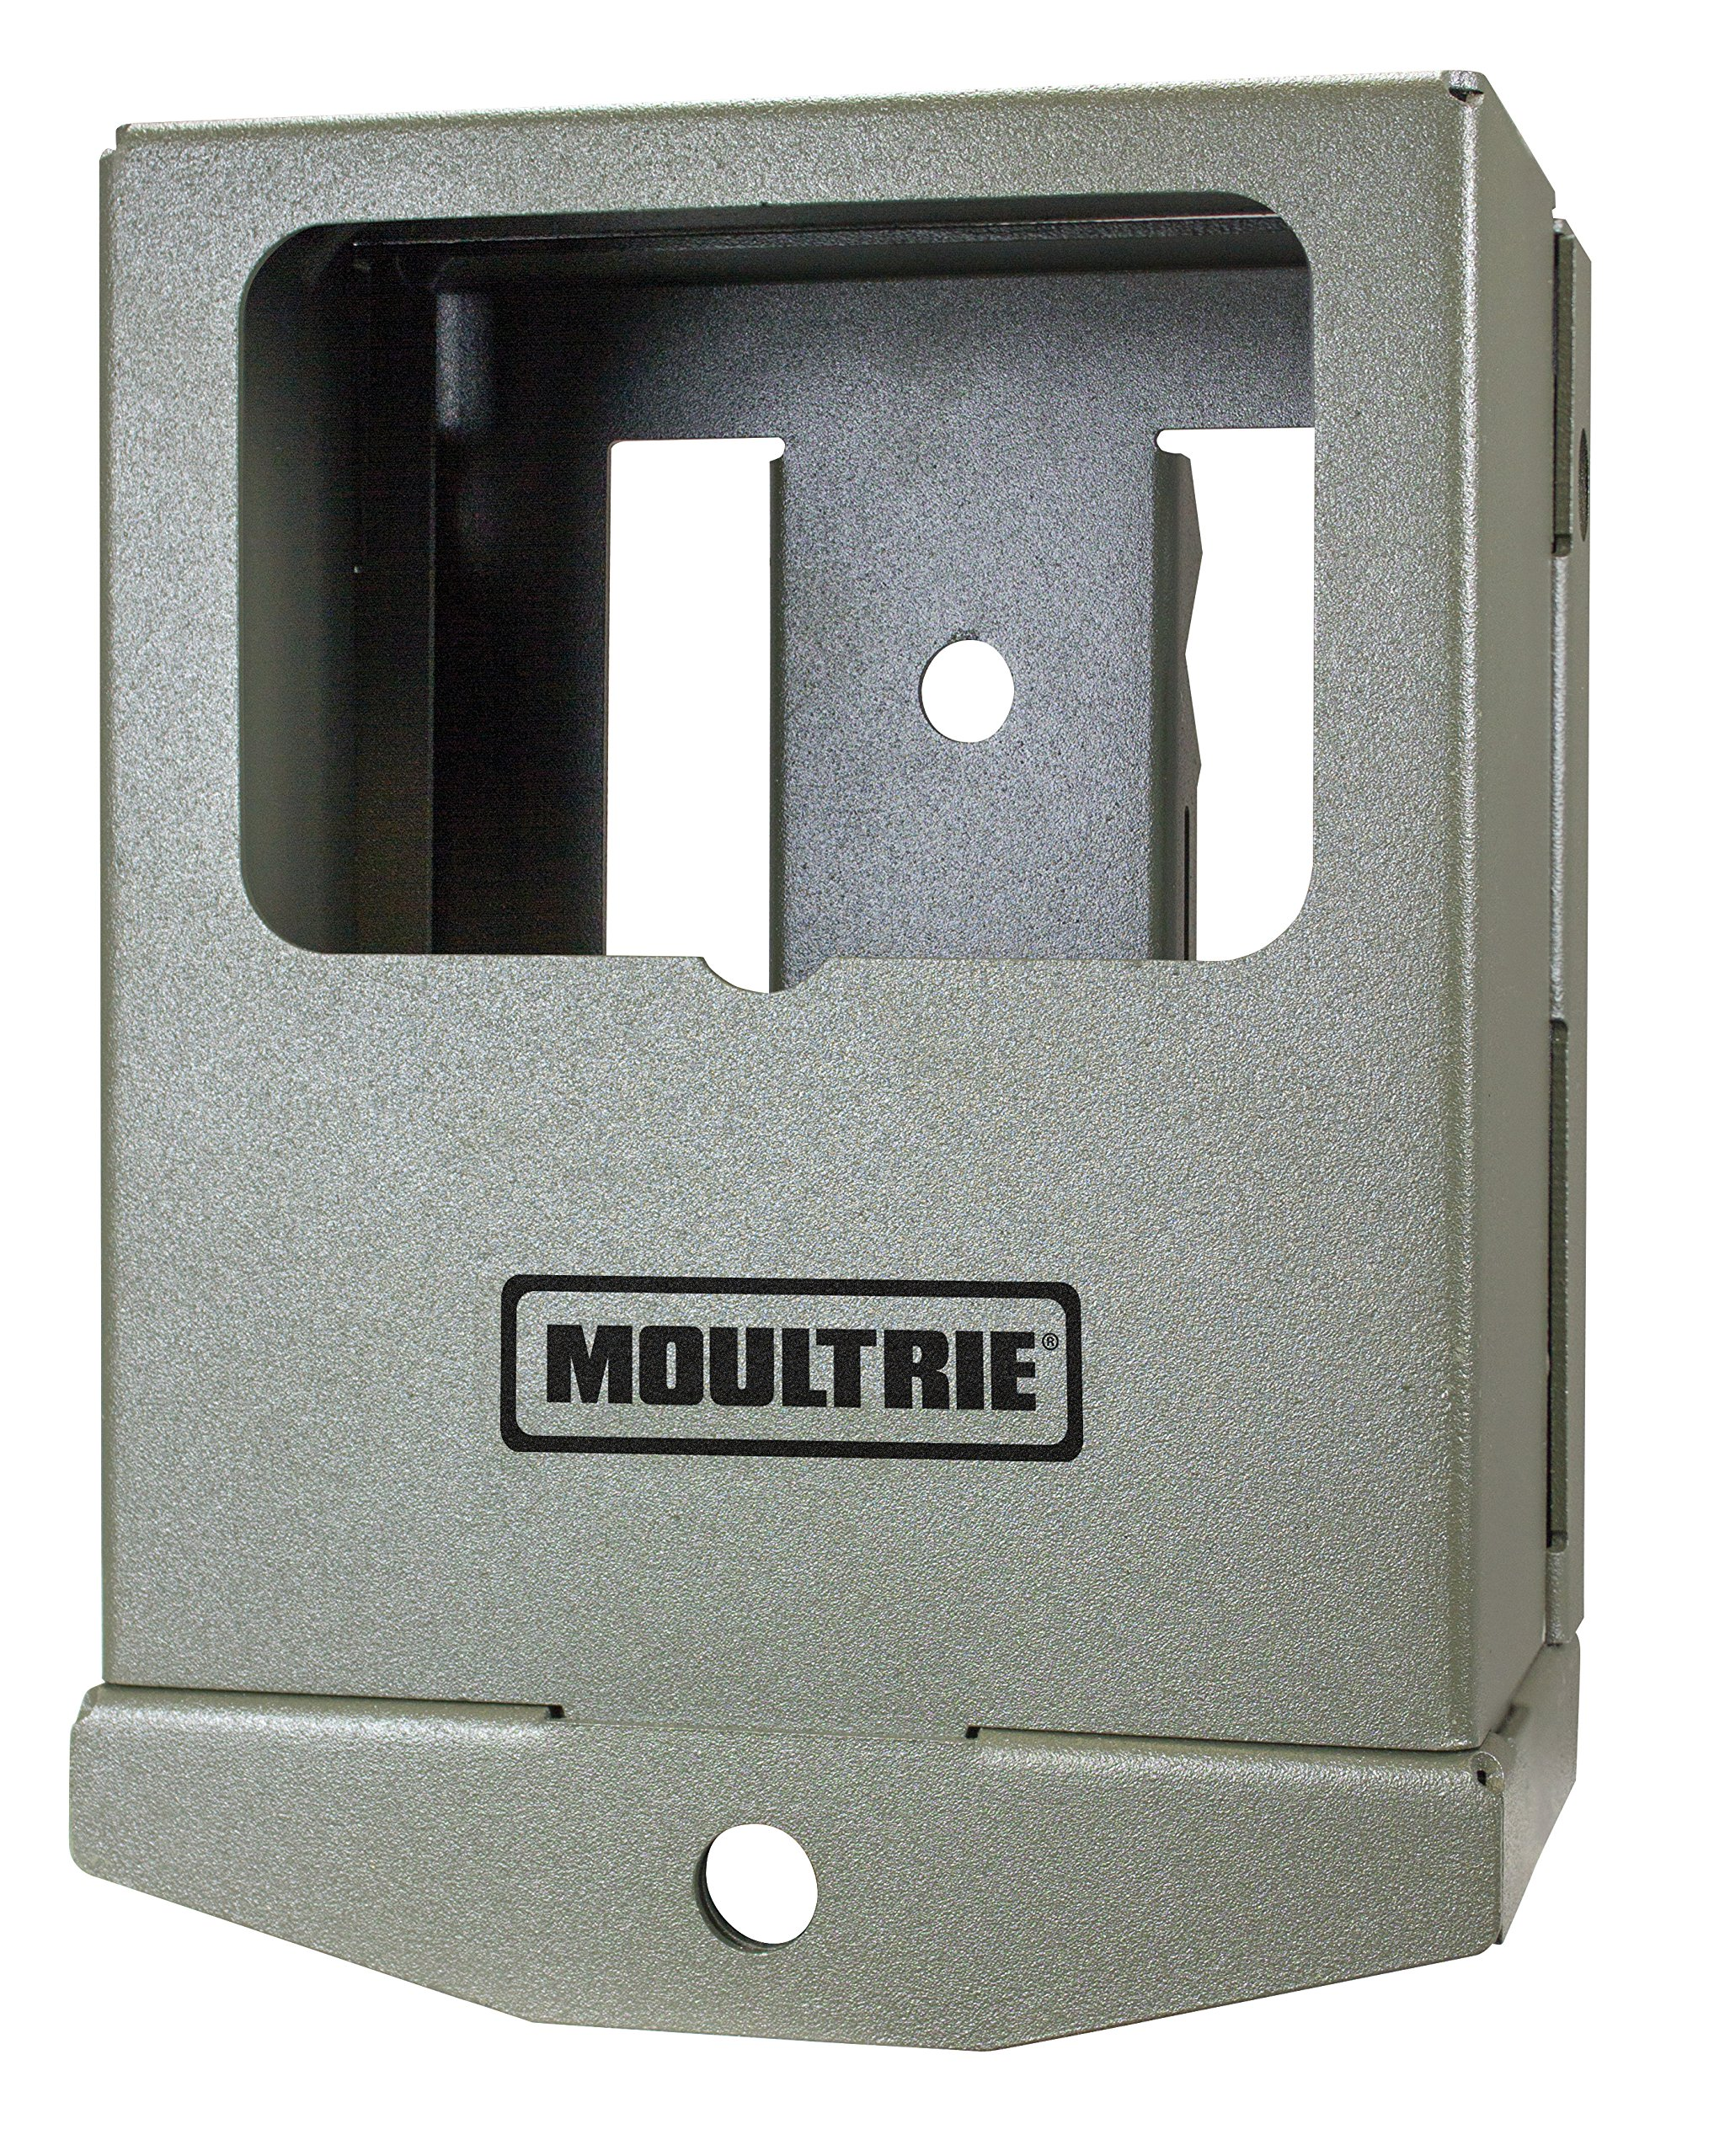 Moultrie S-Series Game Camera Security Box (Fits S-50I) Grey by Moultrie (Image #1)